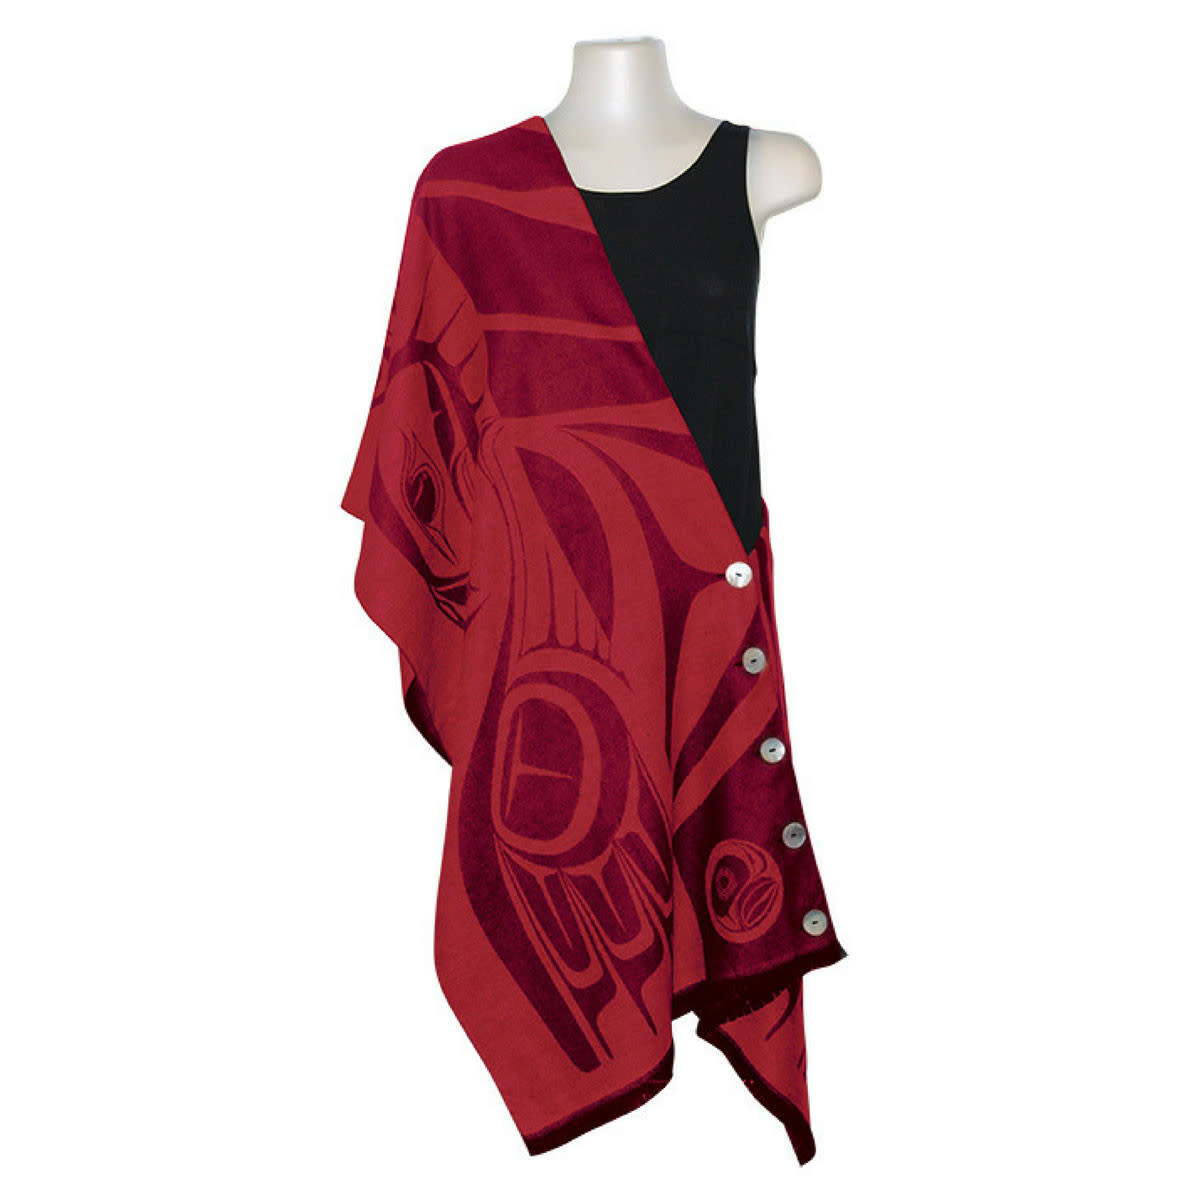 Button Shawl - Eagle by Paul Windsor-2